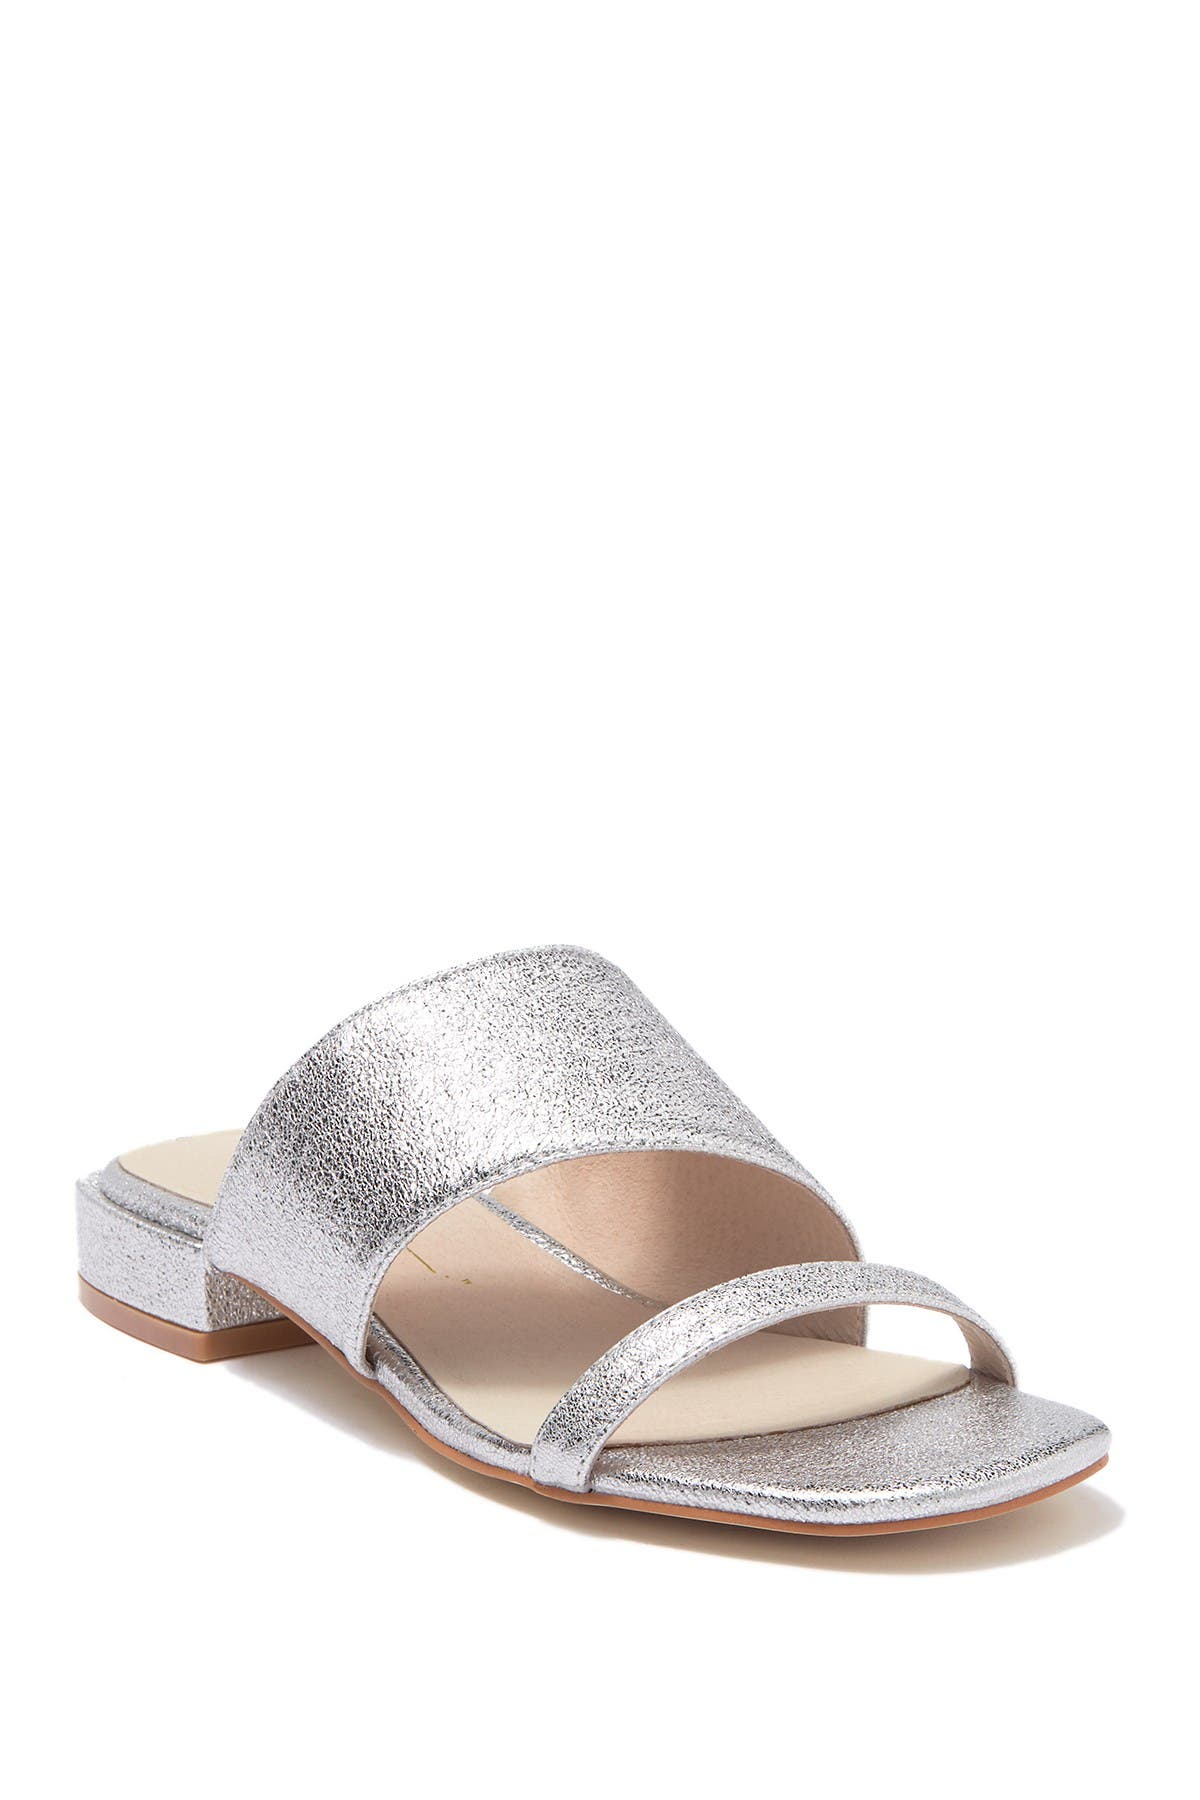 Image of Intentionally Blank Jes Silver Short Block Heel Sandal